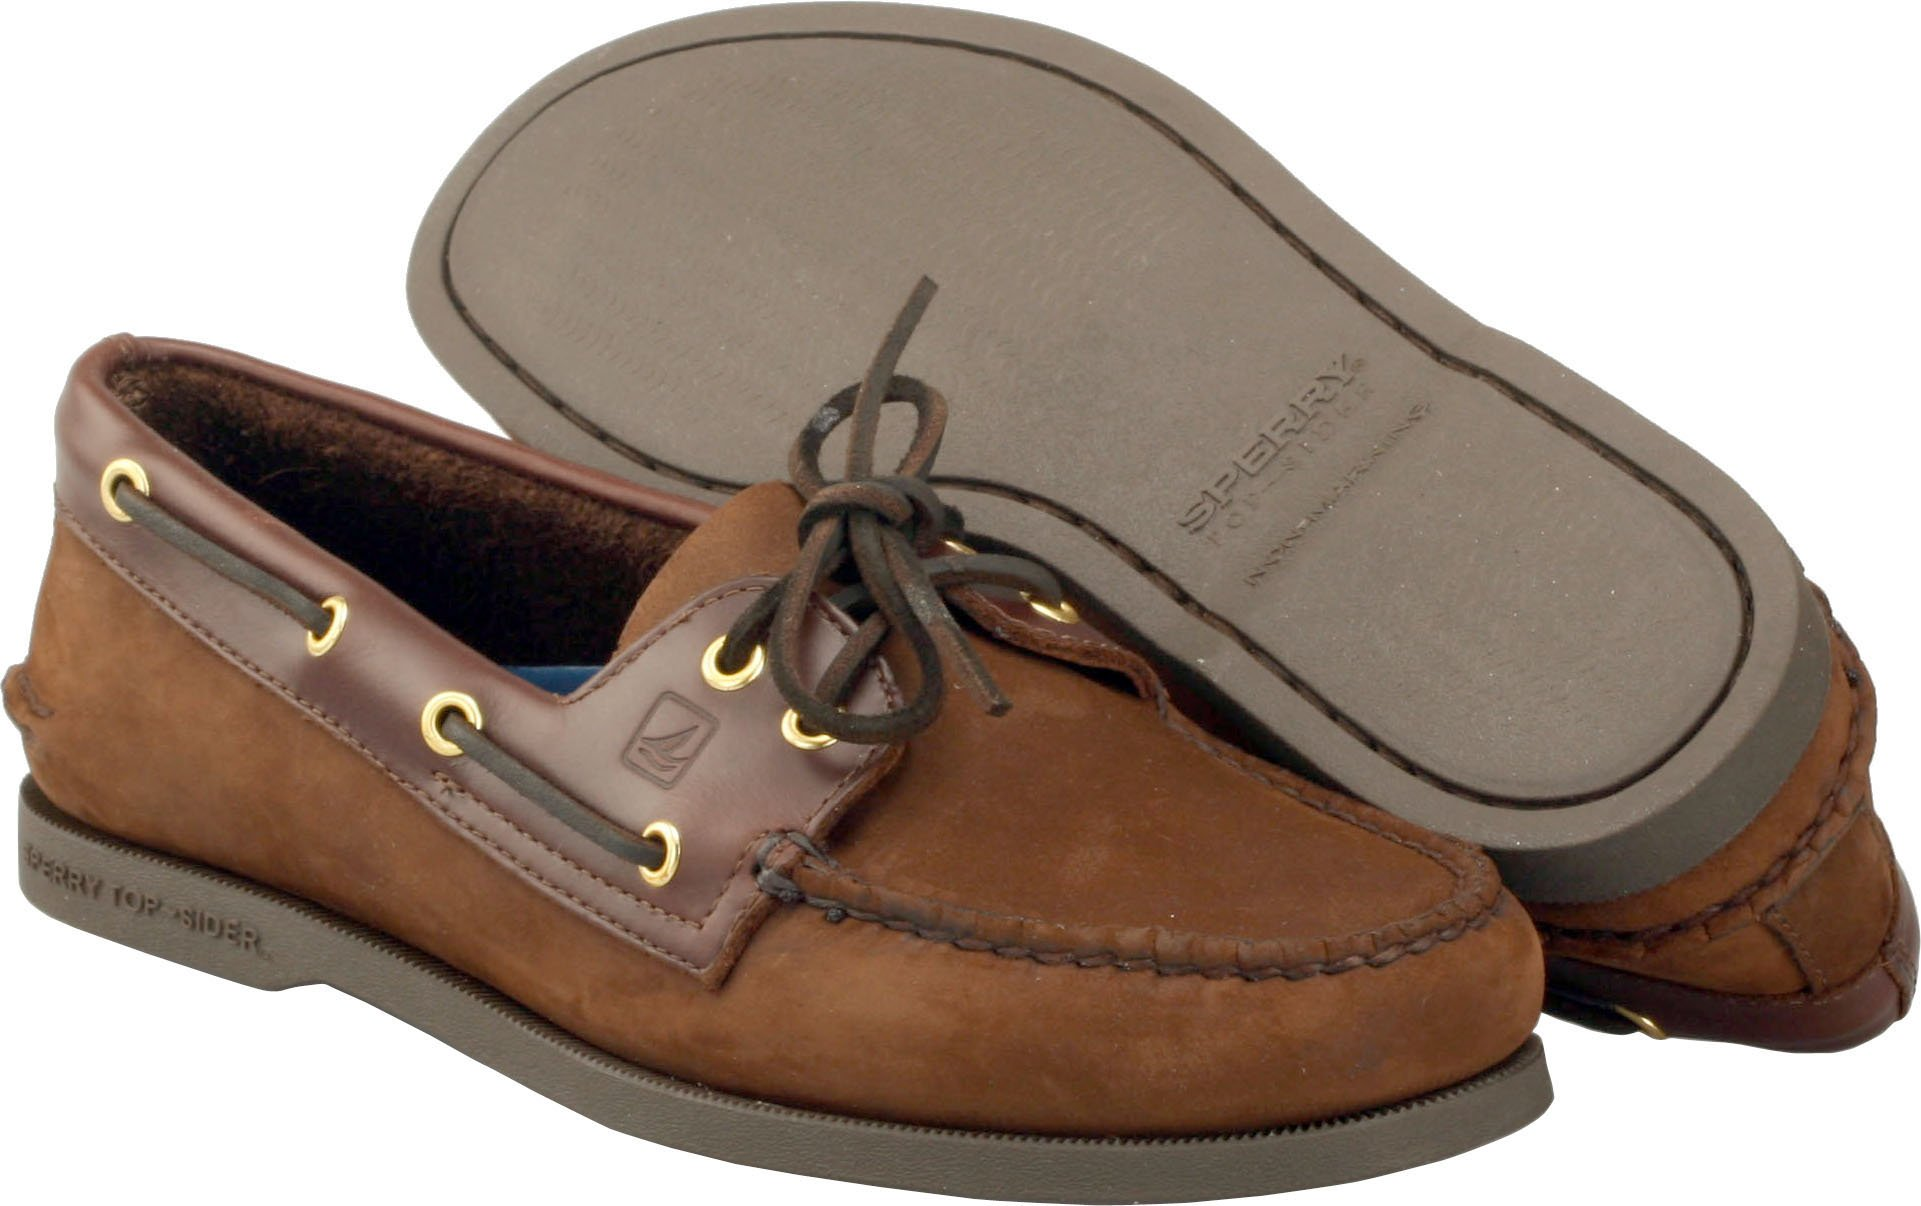 Sperry Top-Sider Men's Authentic 2-Eye Boat Shoe Buck Brown, 11.5 M US